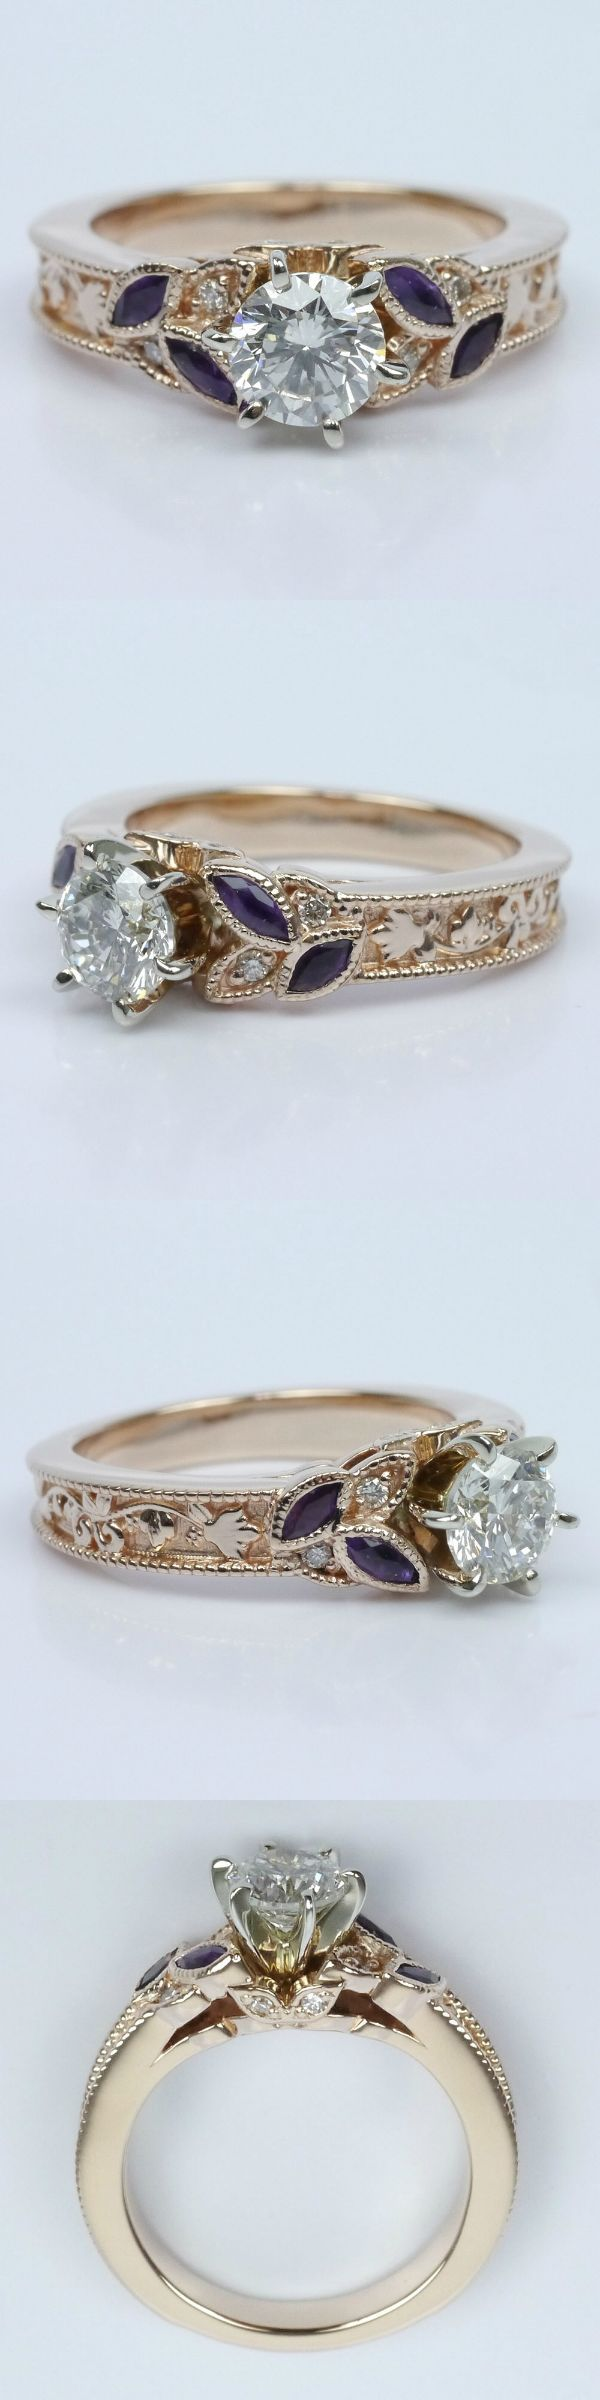 Vintage Diamond and Amethyst Floral Engagement Ring! Round .50 Ctw. Color: L Clarity: S12 Cut: Excellent Certification: EGL Diamond/Gem Cost: $580 Vintage Diamond and Amethyst Floral Ring Metal: 14K White Gold Side Shape: Round and Marquise Side Carat: .05/.40 Side Color: G-H/Medium Purple Side Clarity: VS2/Eye Clean  Side Cut: Ideal Prong Metal: 14k White Gold Setting Cost: $1,595 Total Cost: $2,175 www.brilliance.com